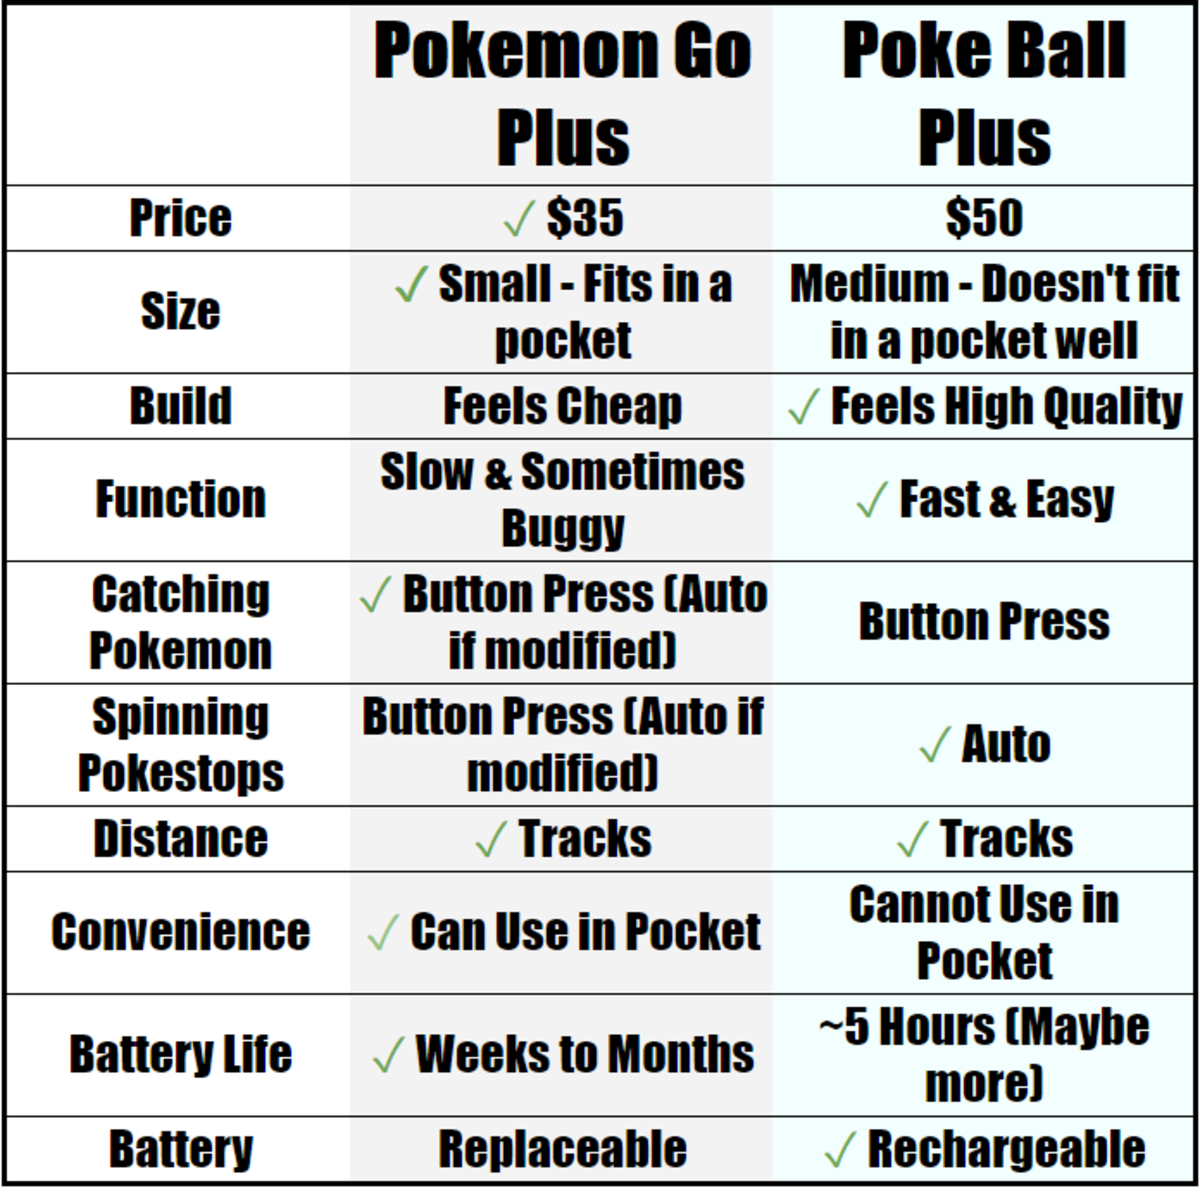 How does the Poké Ball Plus stack up against the Pokémon Go Plus?